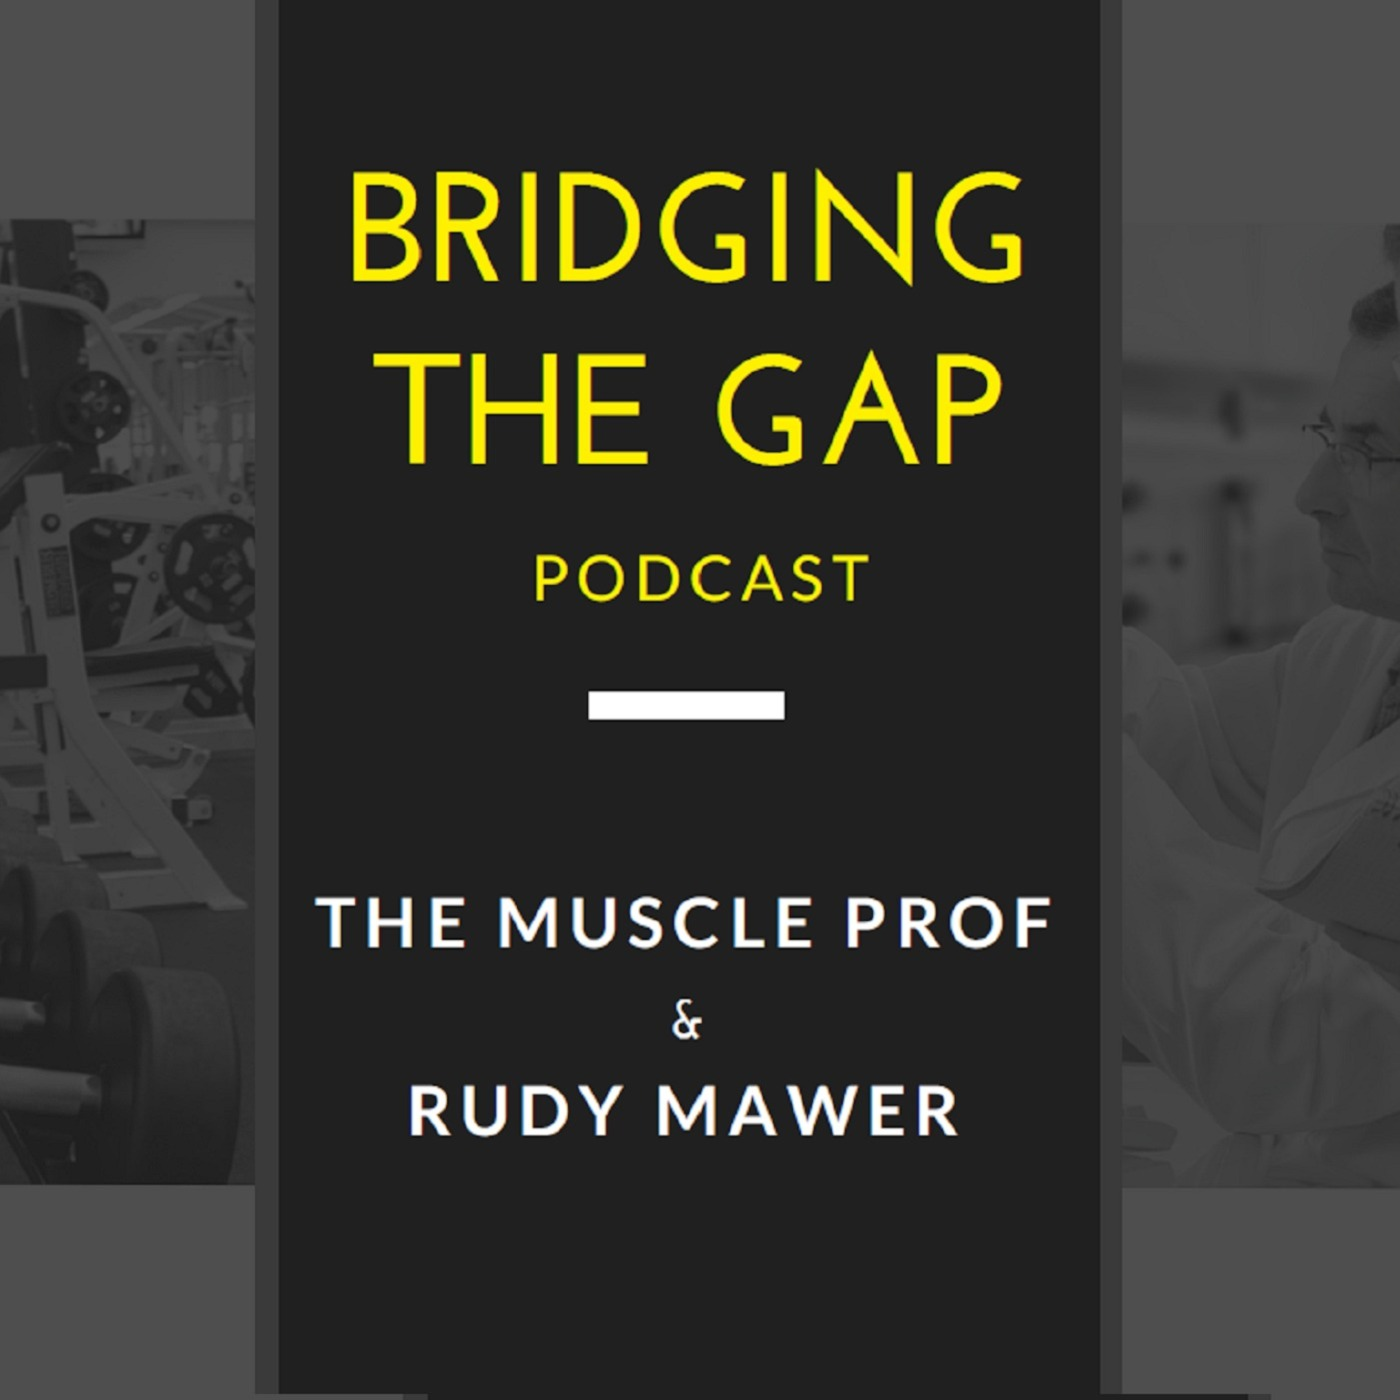 Bridging The Gap Podcast - Dr. Jacob Wilson & Rudy Mawer